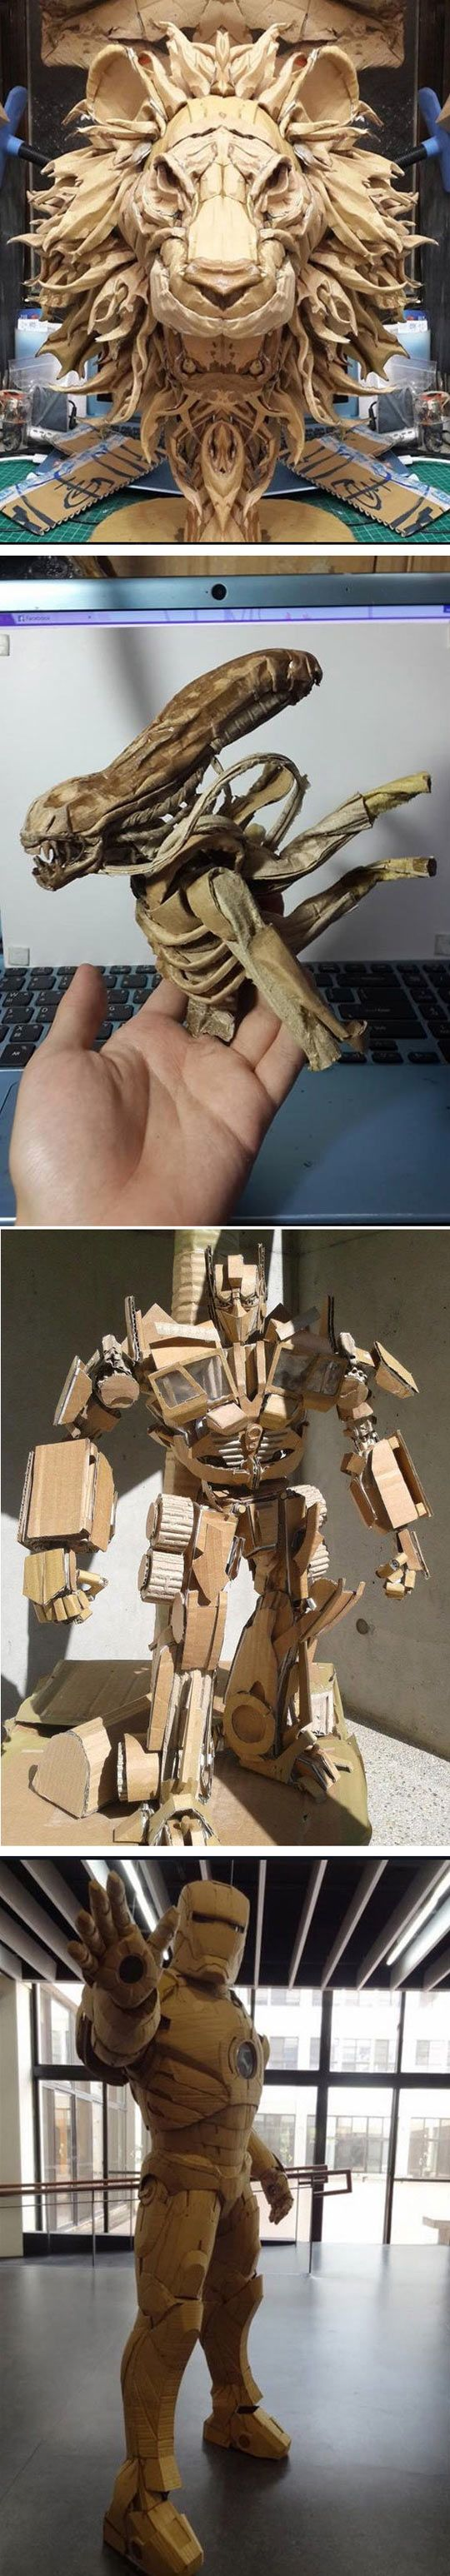 Creatures made from cardboard